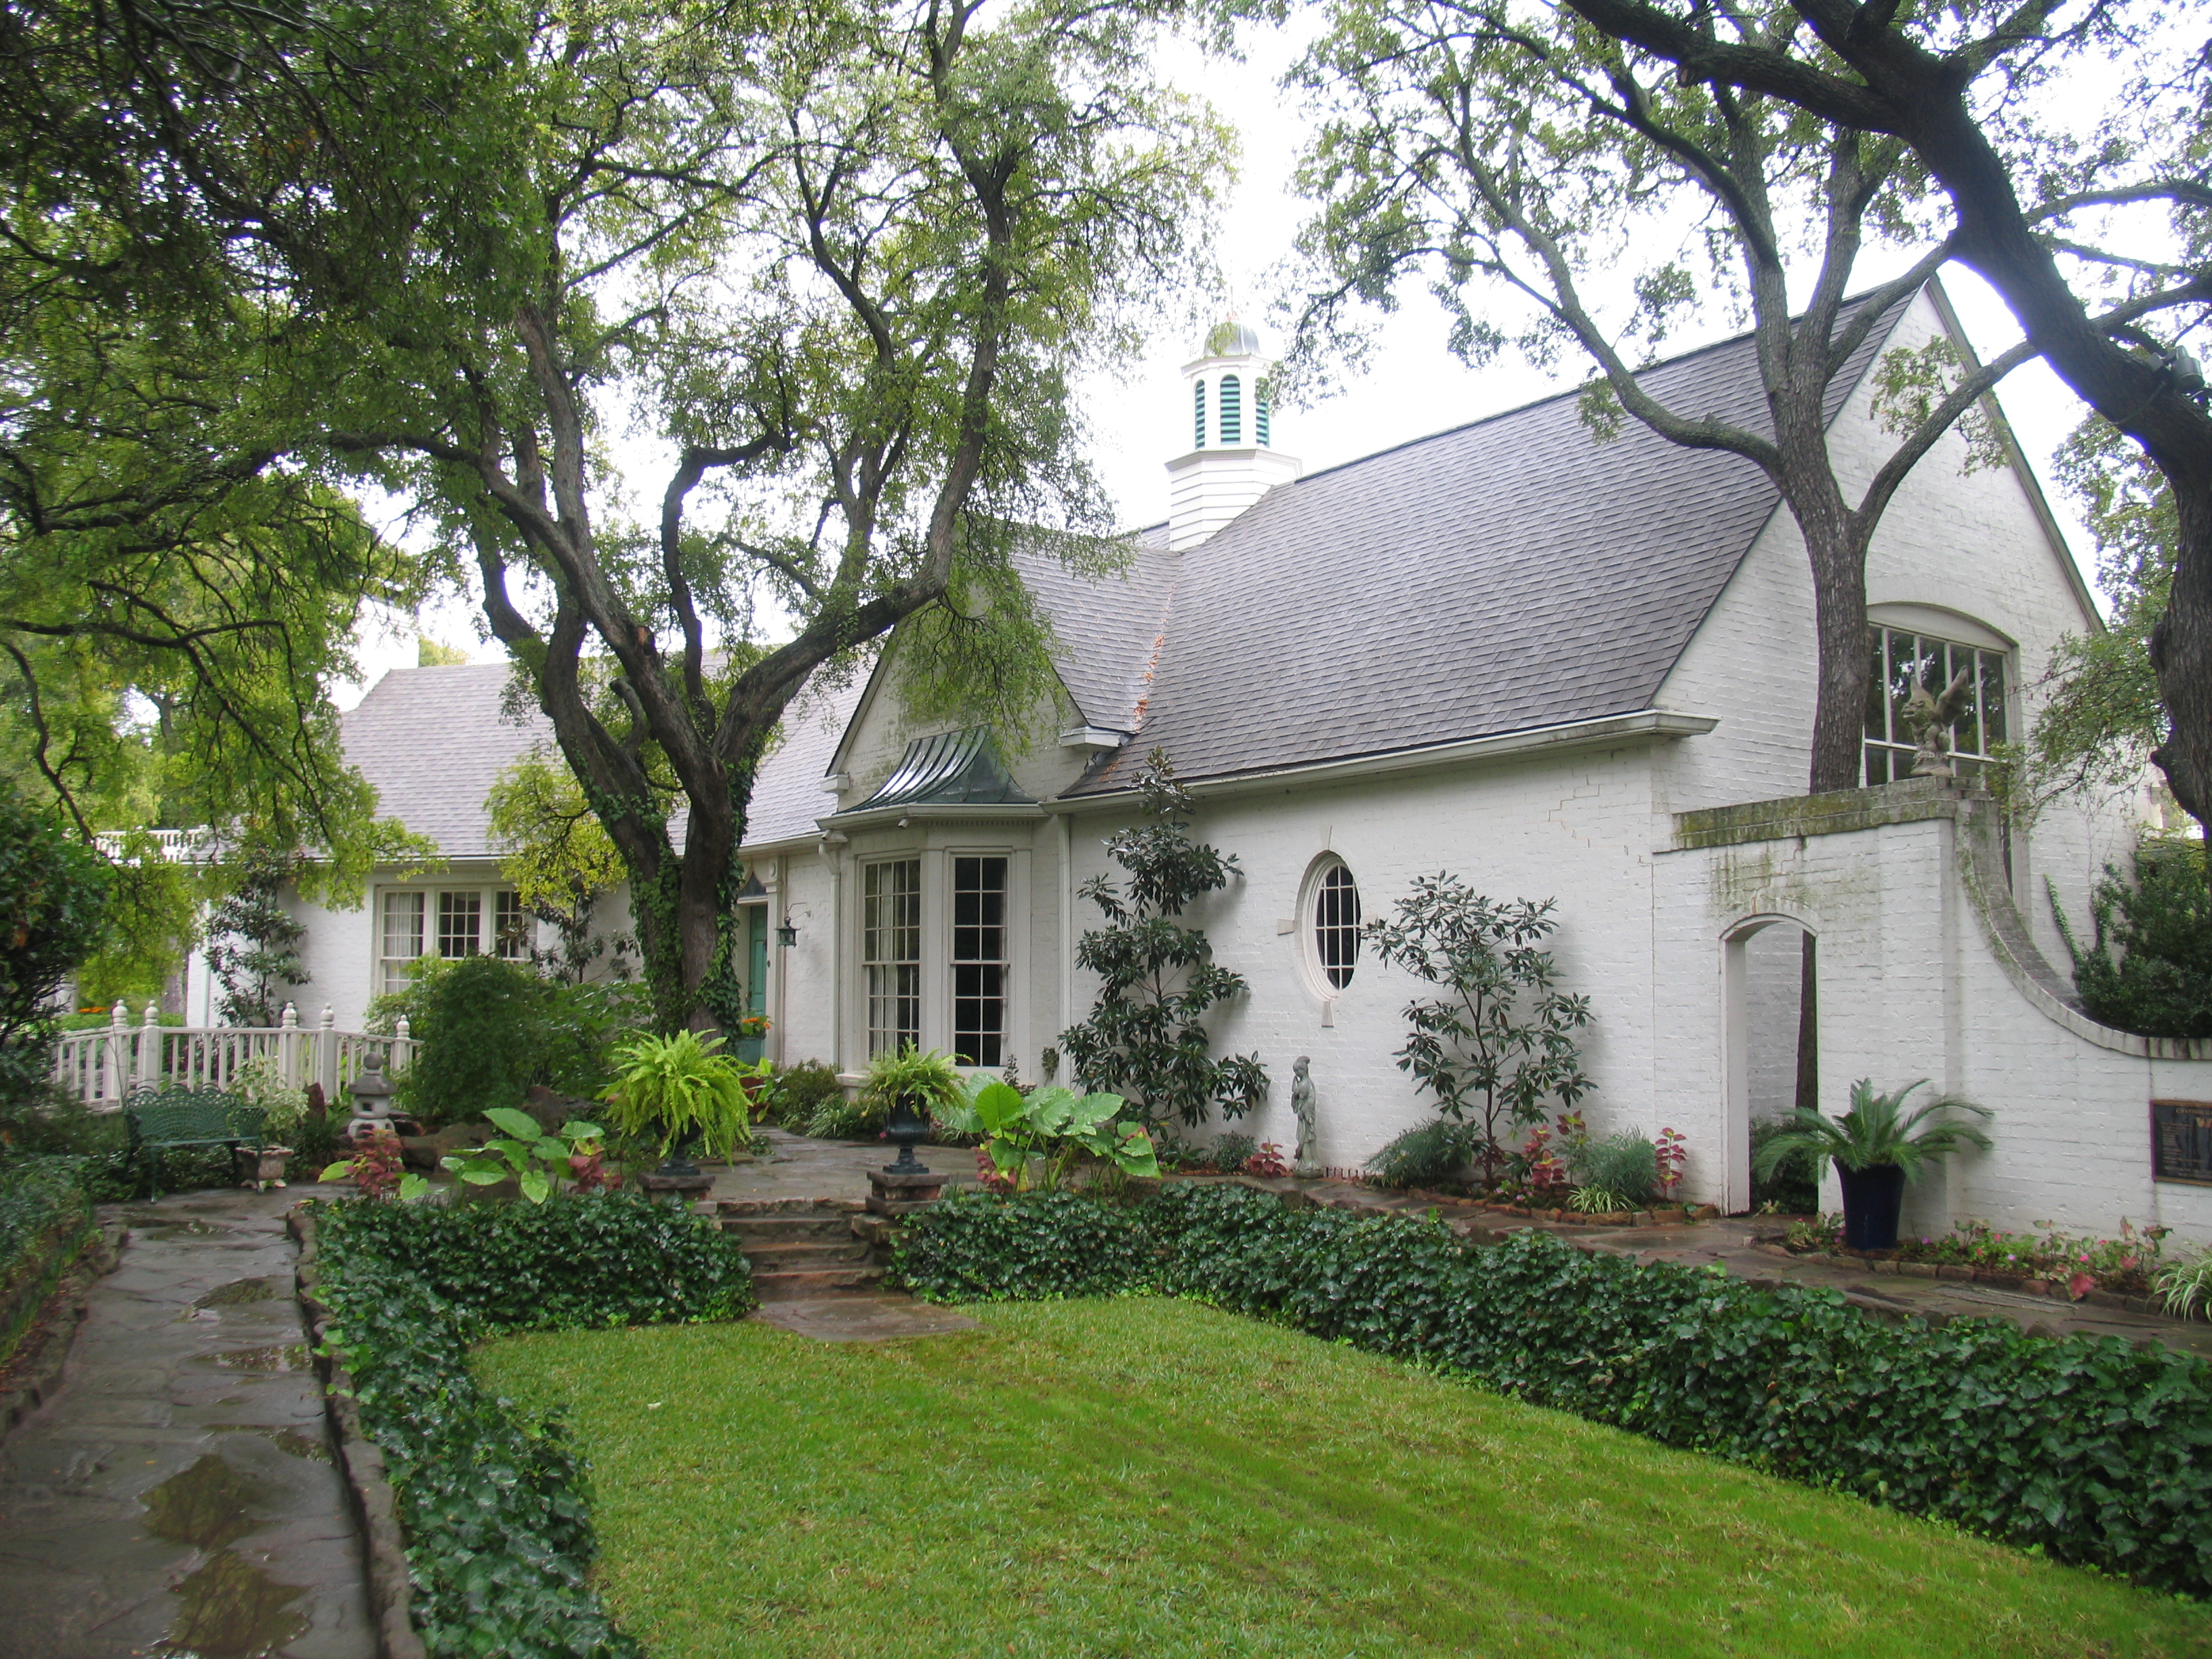 Recent Listing Chandor Gardens Weatherford Parker County Thc Texas Historical